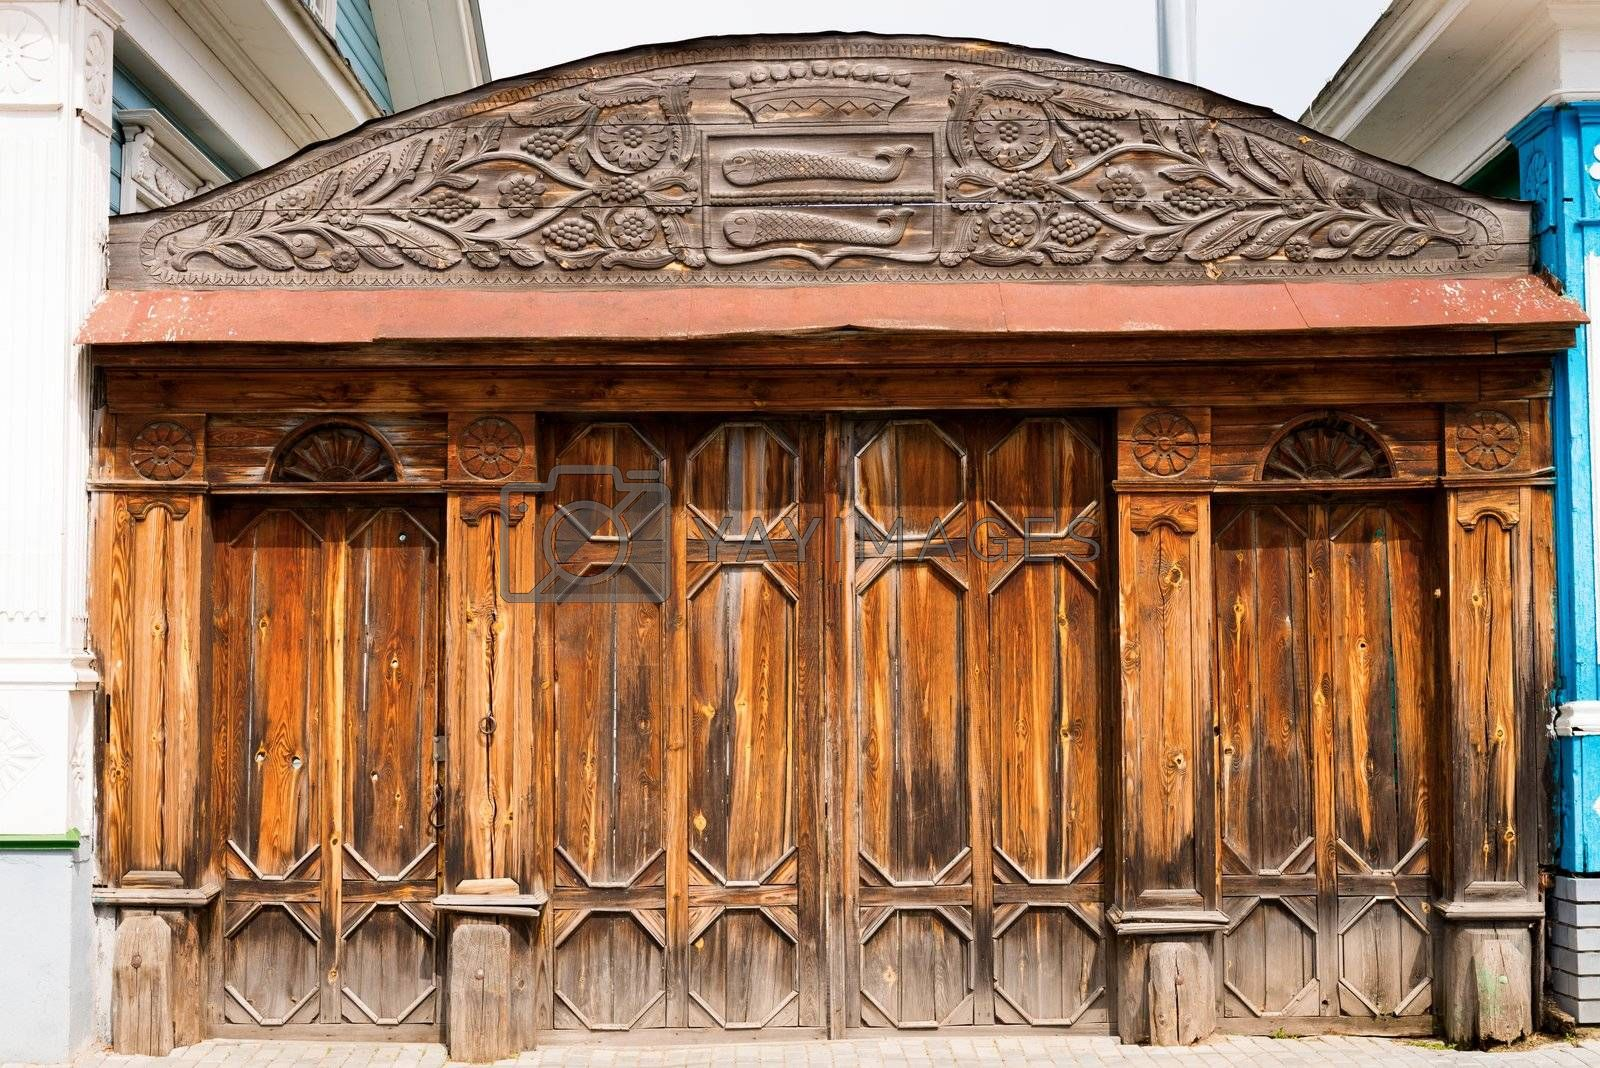 Old closed wooden ornate gate, with symbols on the top